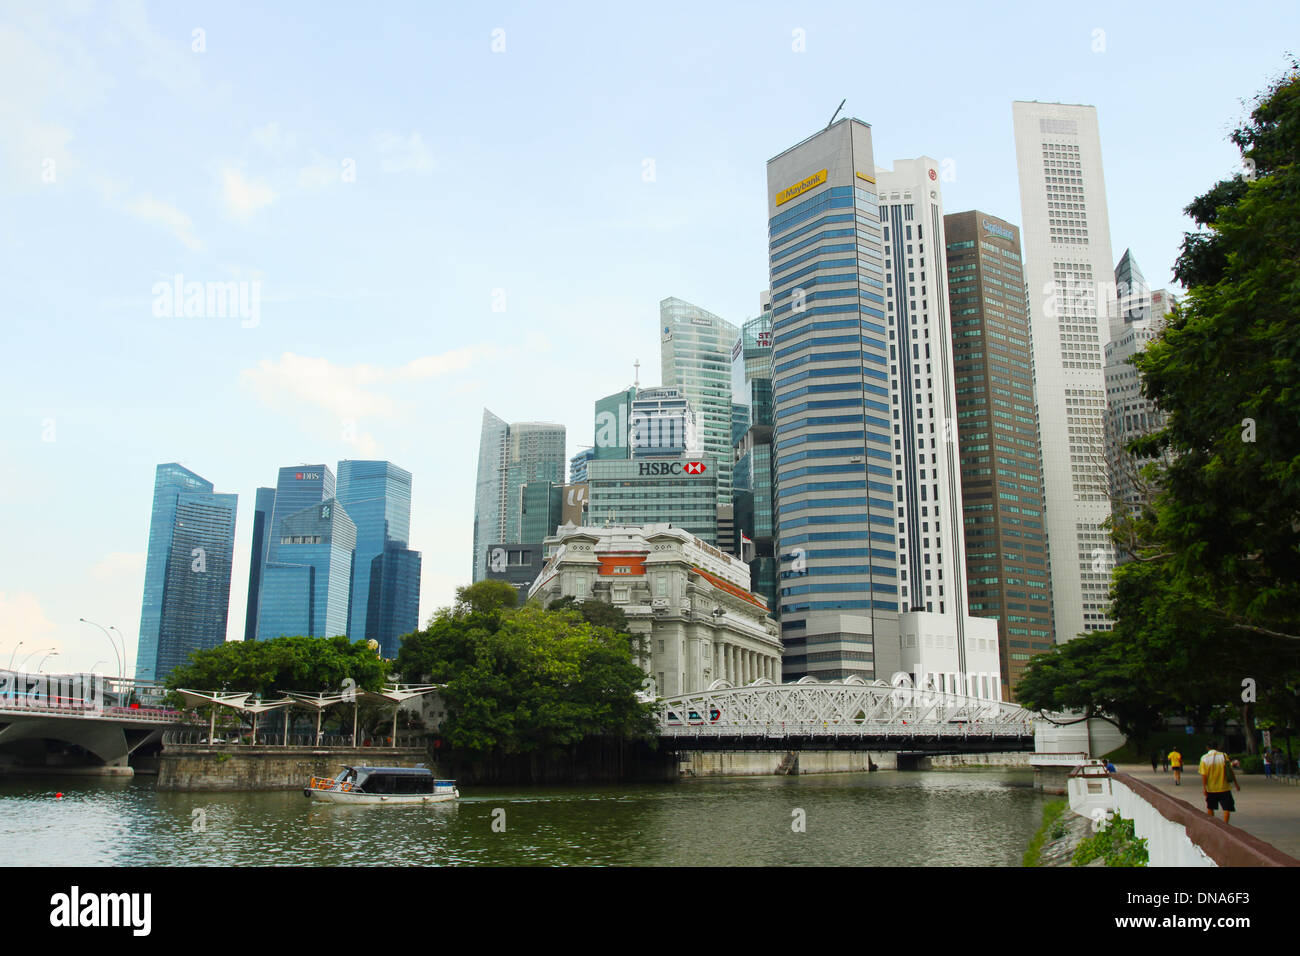 Anderson Bridge in front of Central Singapore. Singapore. Singapore River. - Stock Image